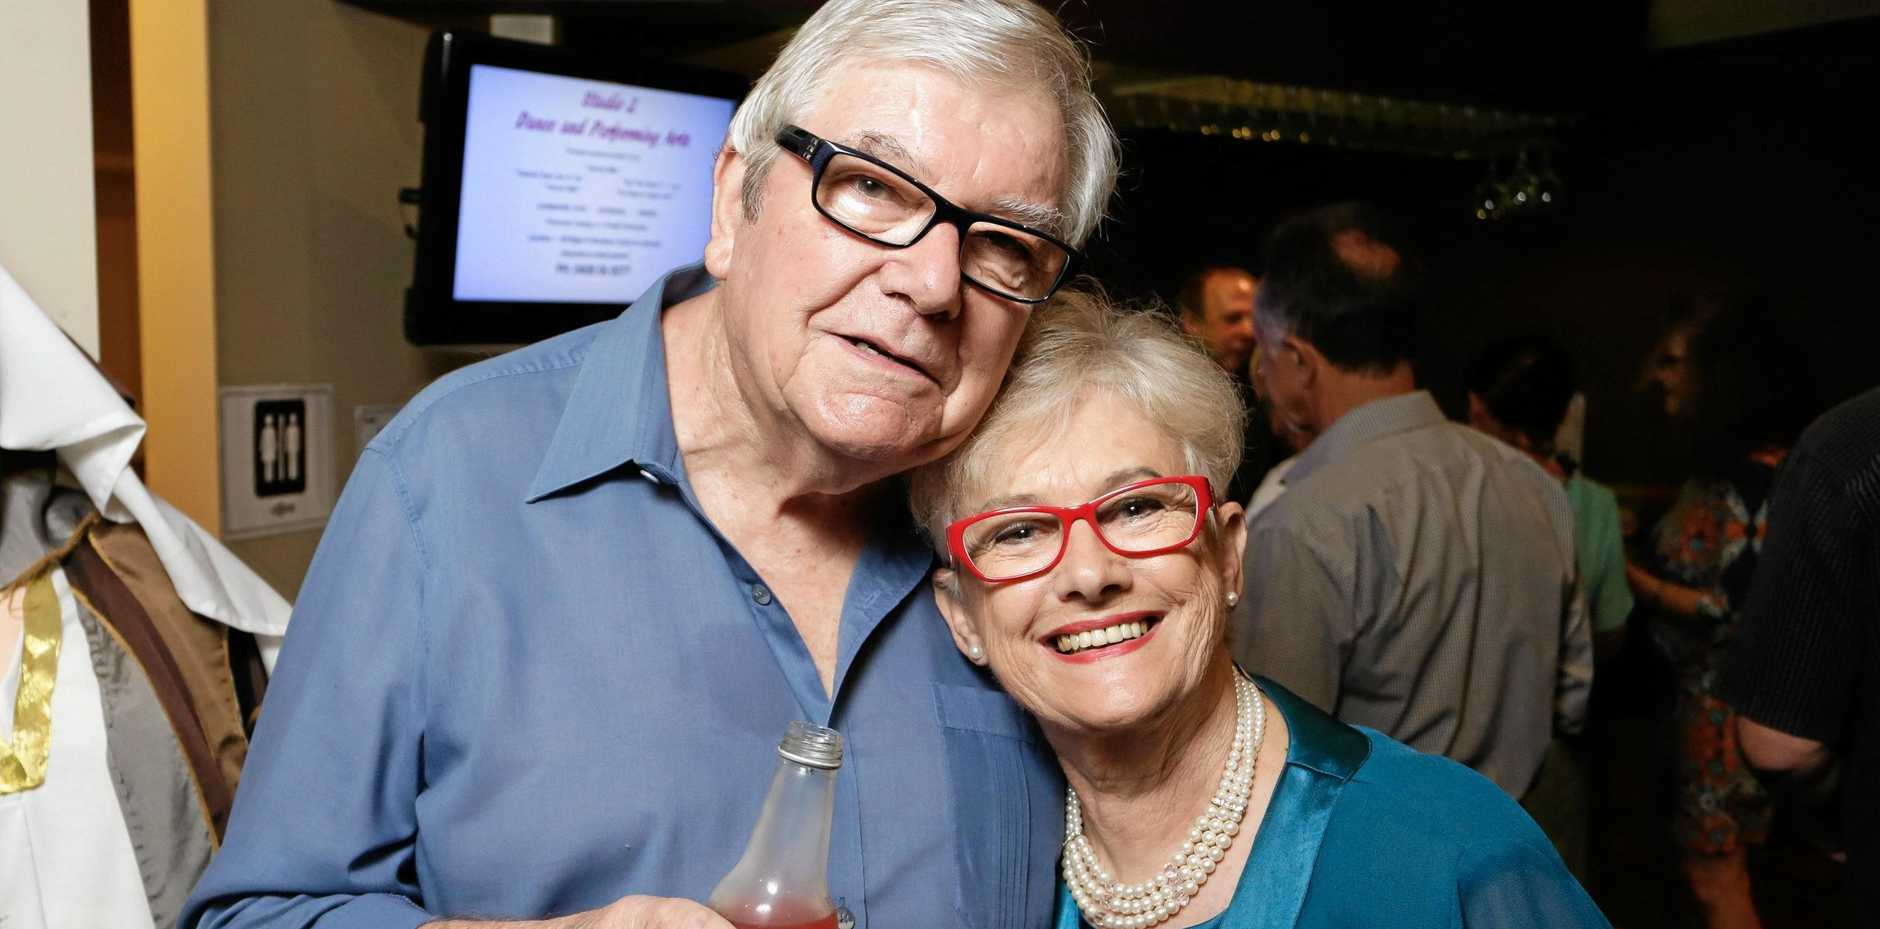 John and Carol Burls at the The Lind Theatre Nambour opening night of The Making Of The Great Lover.